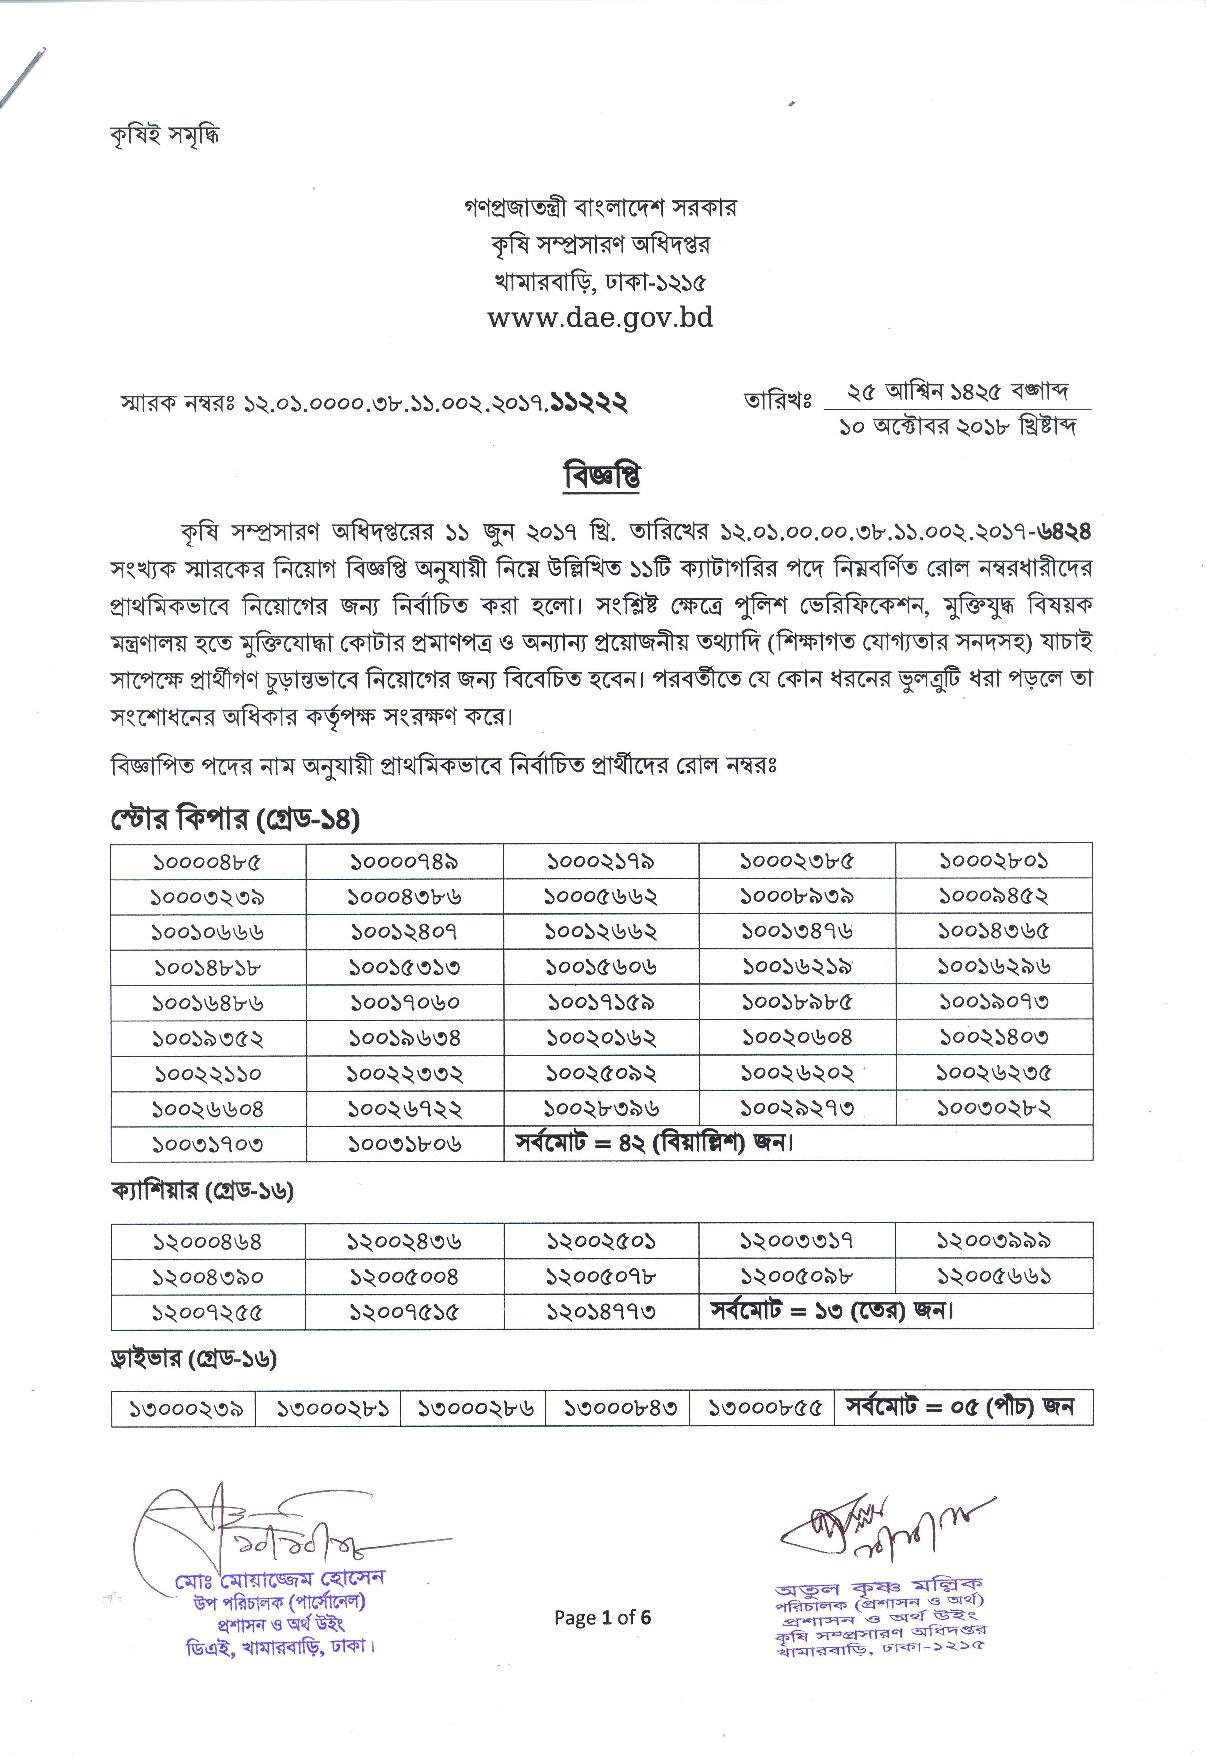 Department of Agricultural Extension (DAE) Viva Date And Results 2018 DAE Final Result 2018 published: